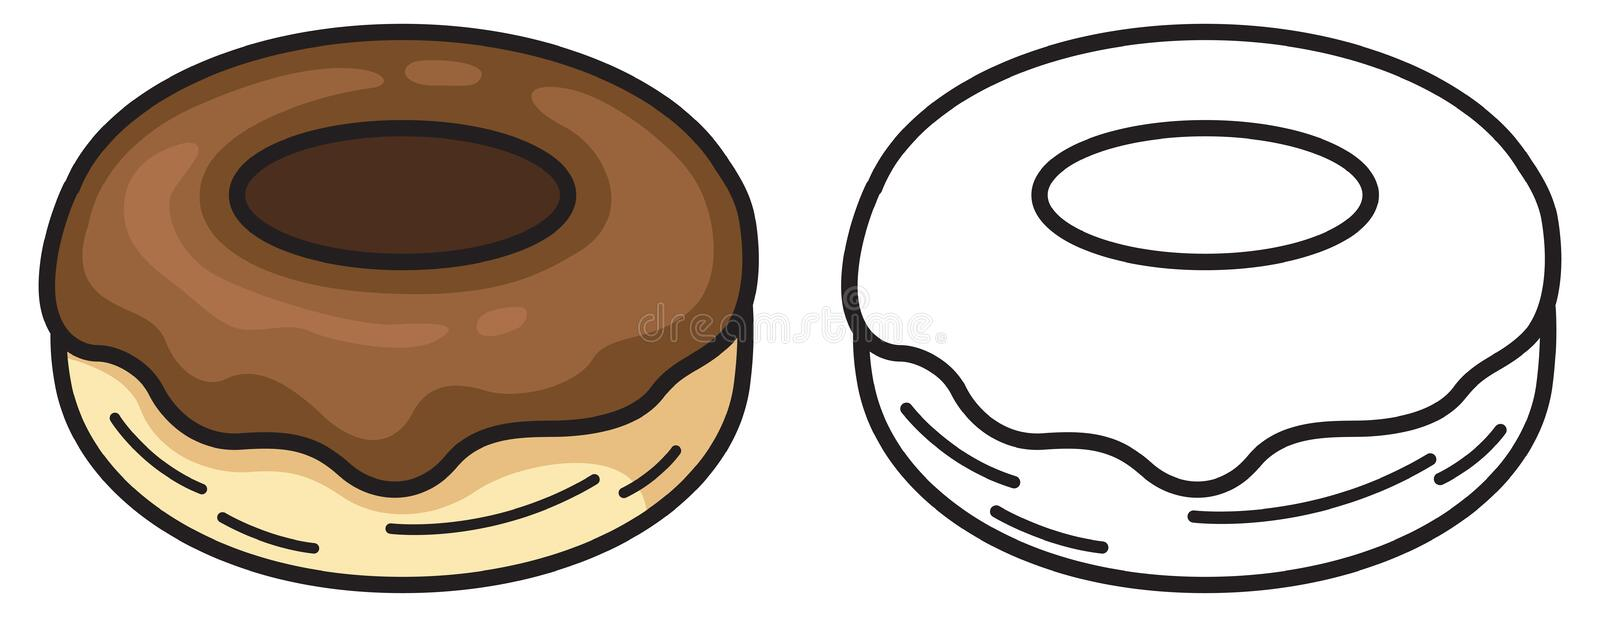 Colorful And Black And White Donut For Coloring Book Stock Vector ...